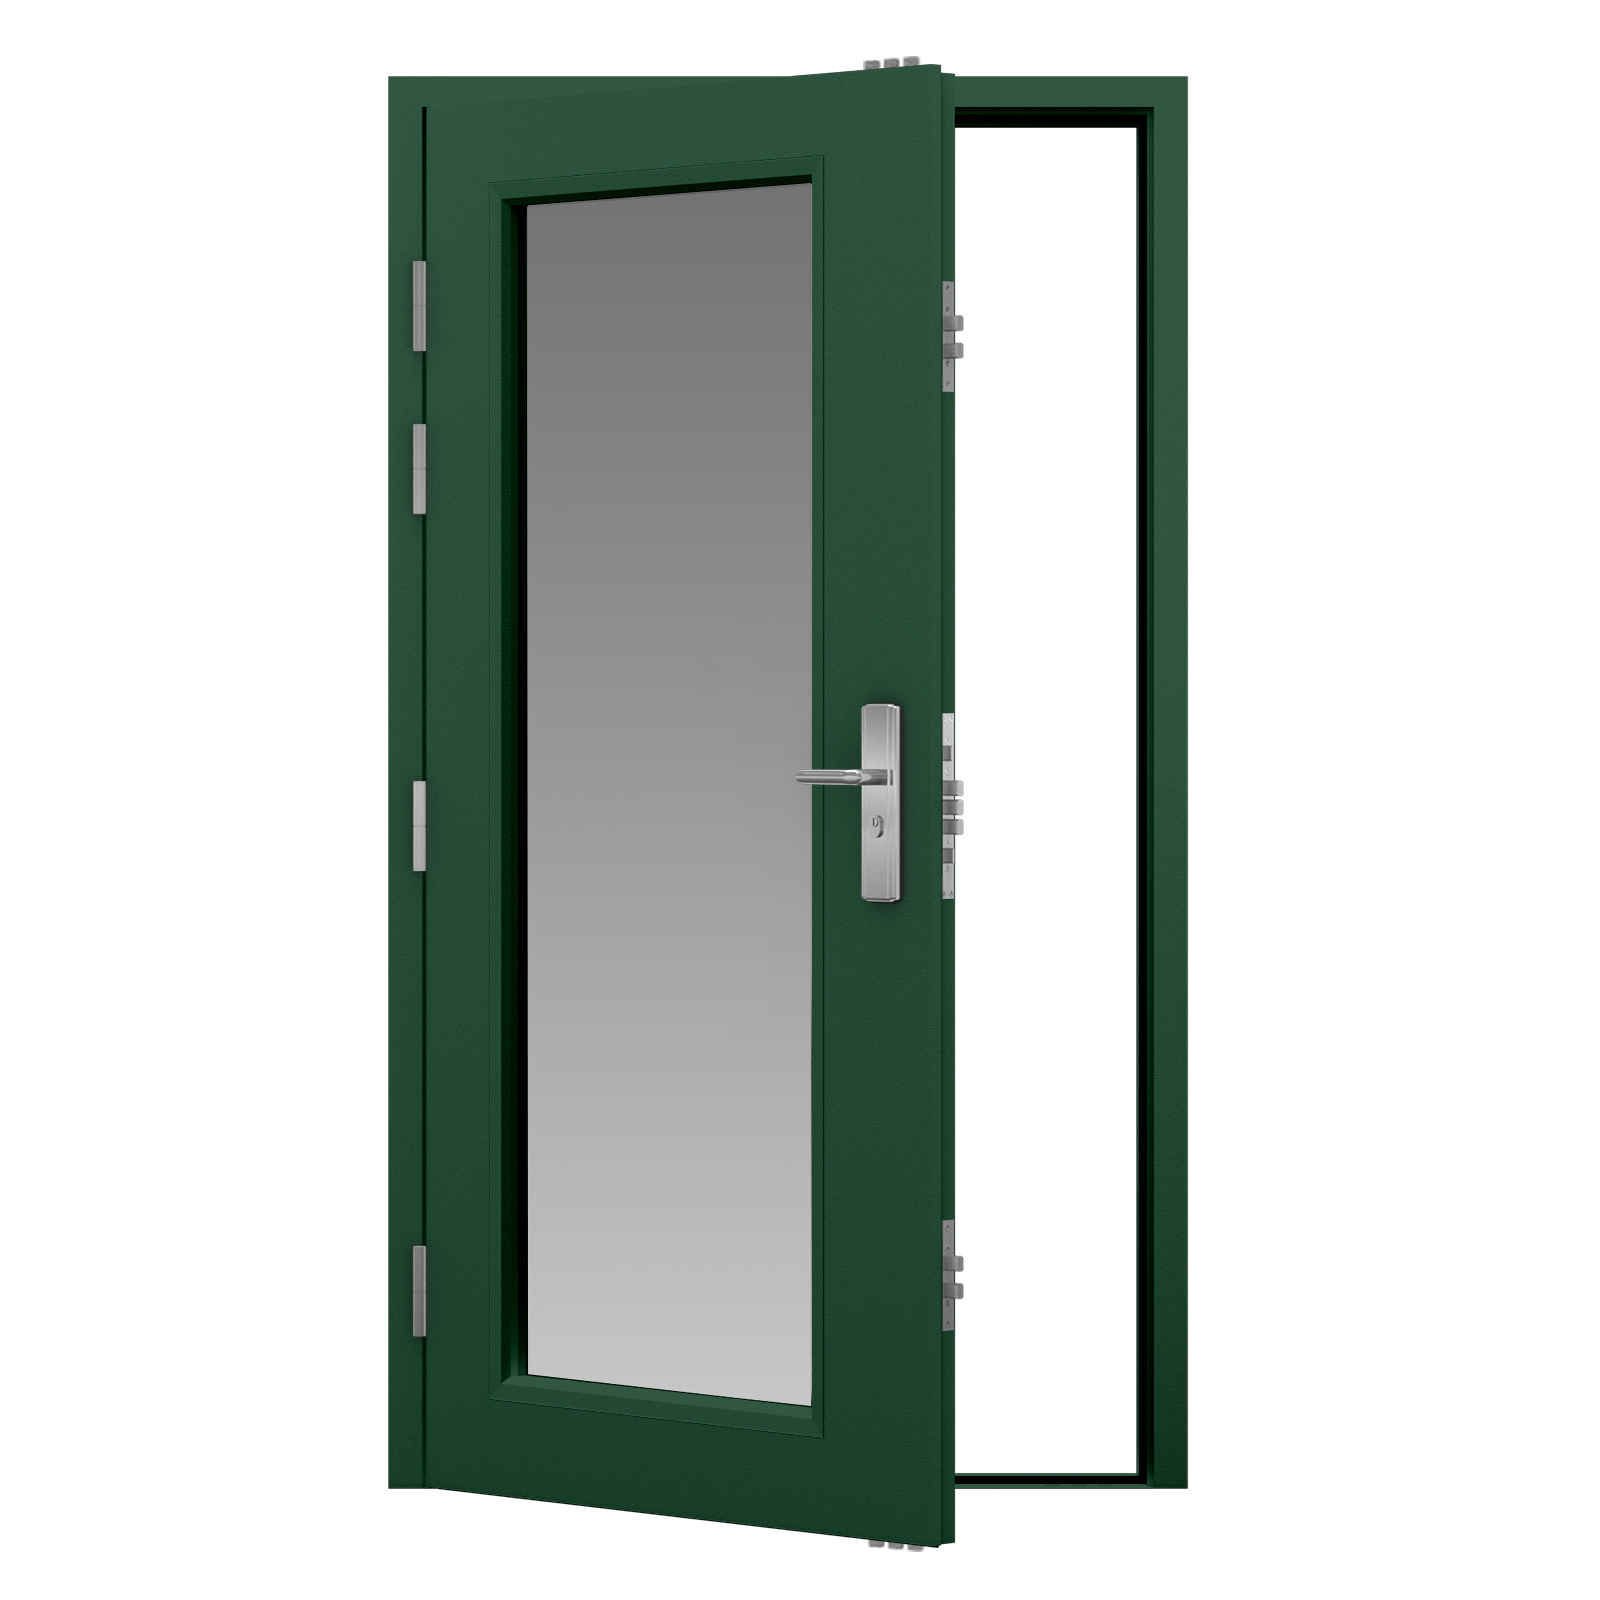 product com with security afrotino details buy doors company limited door ghanatrader